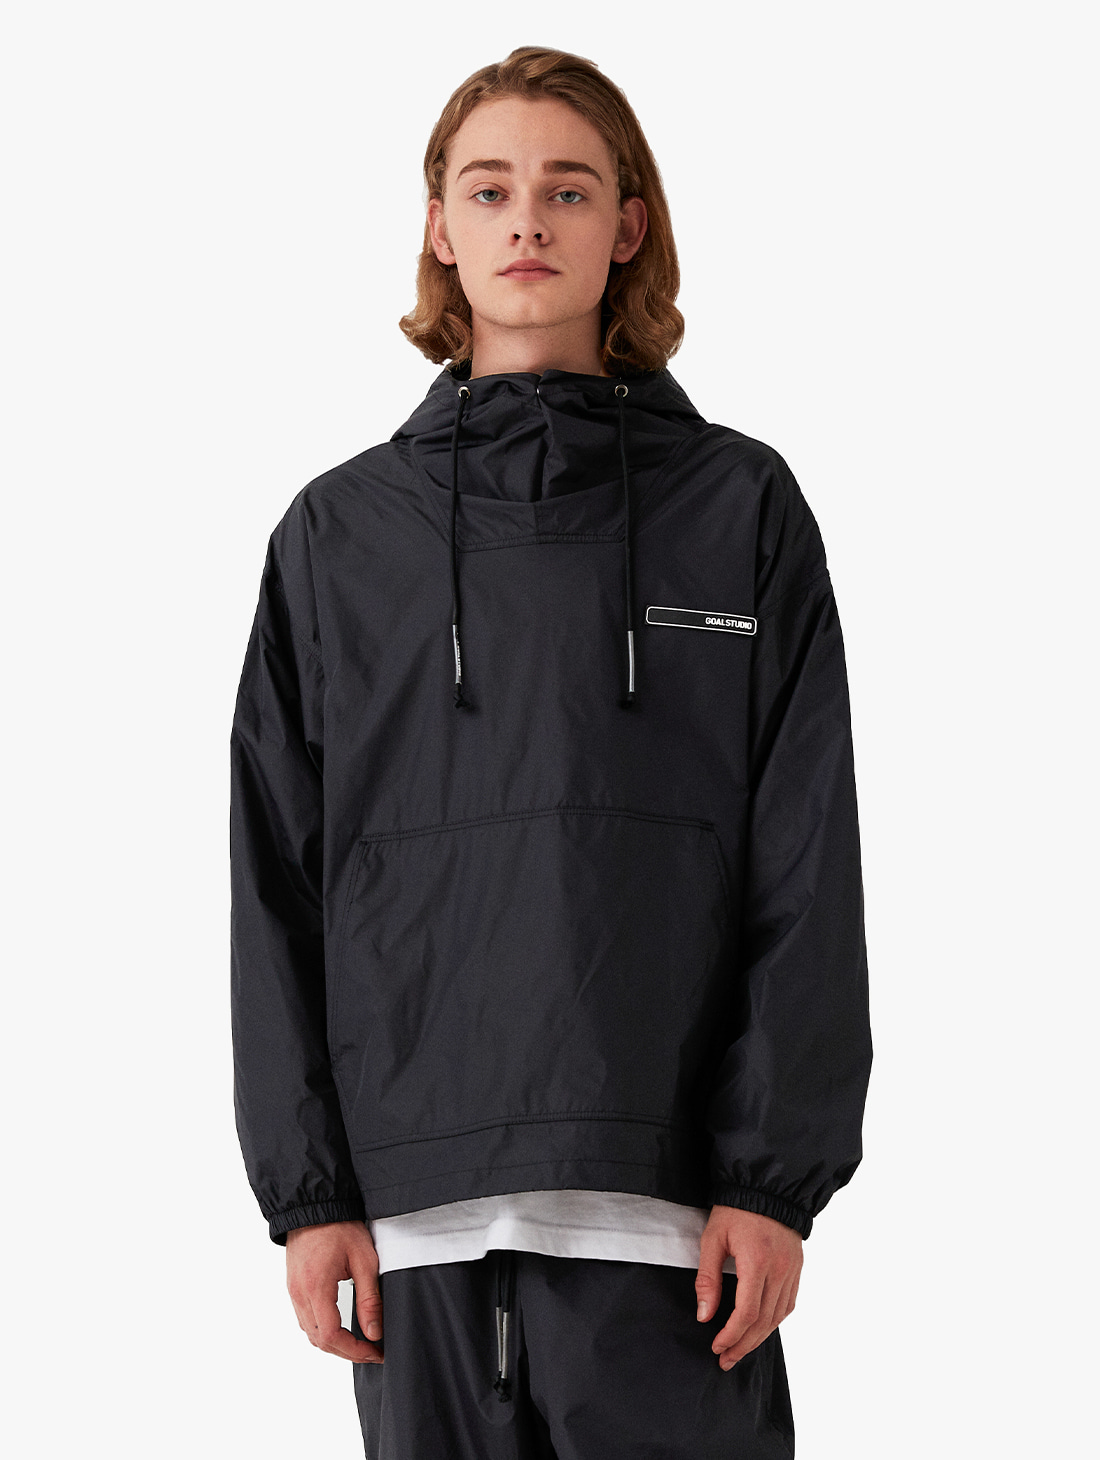 OVERSIZED ANORAK JACKET (2 Colors)